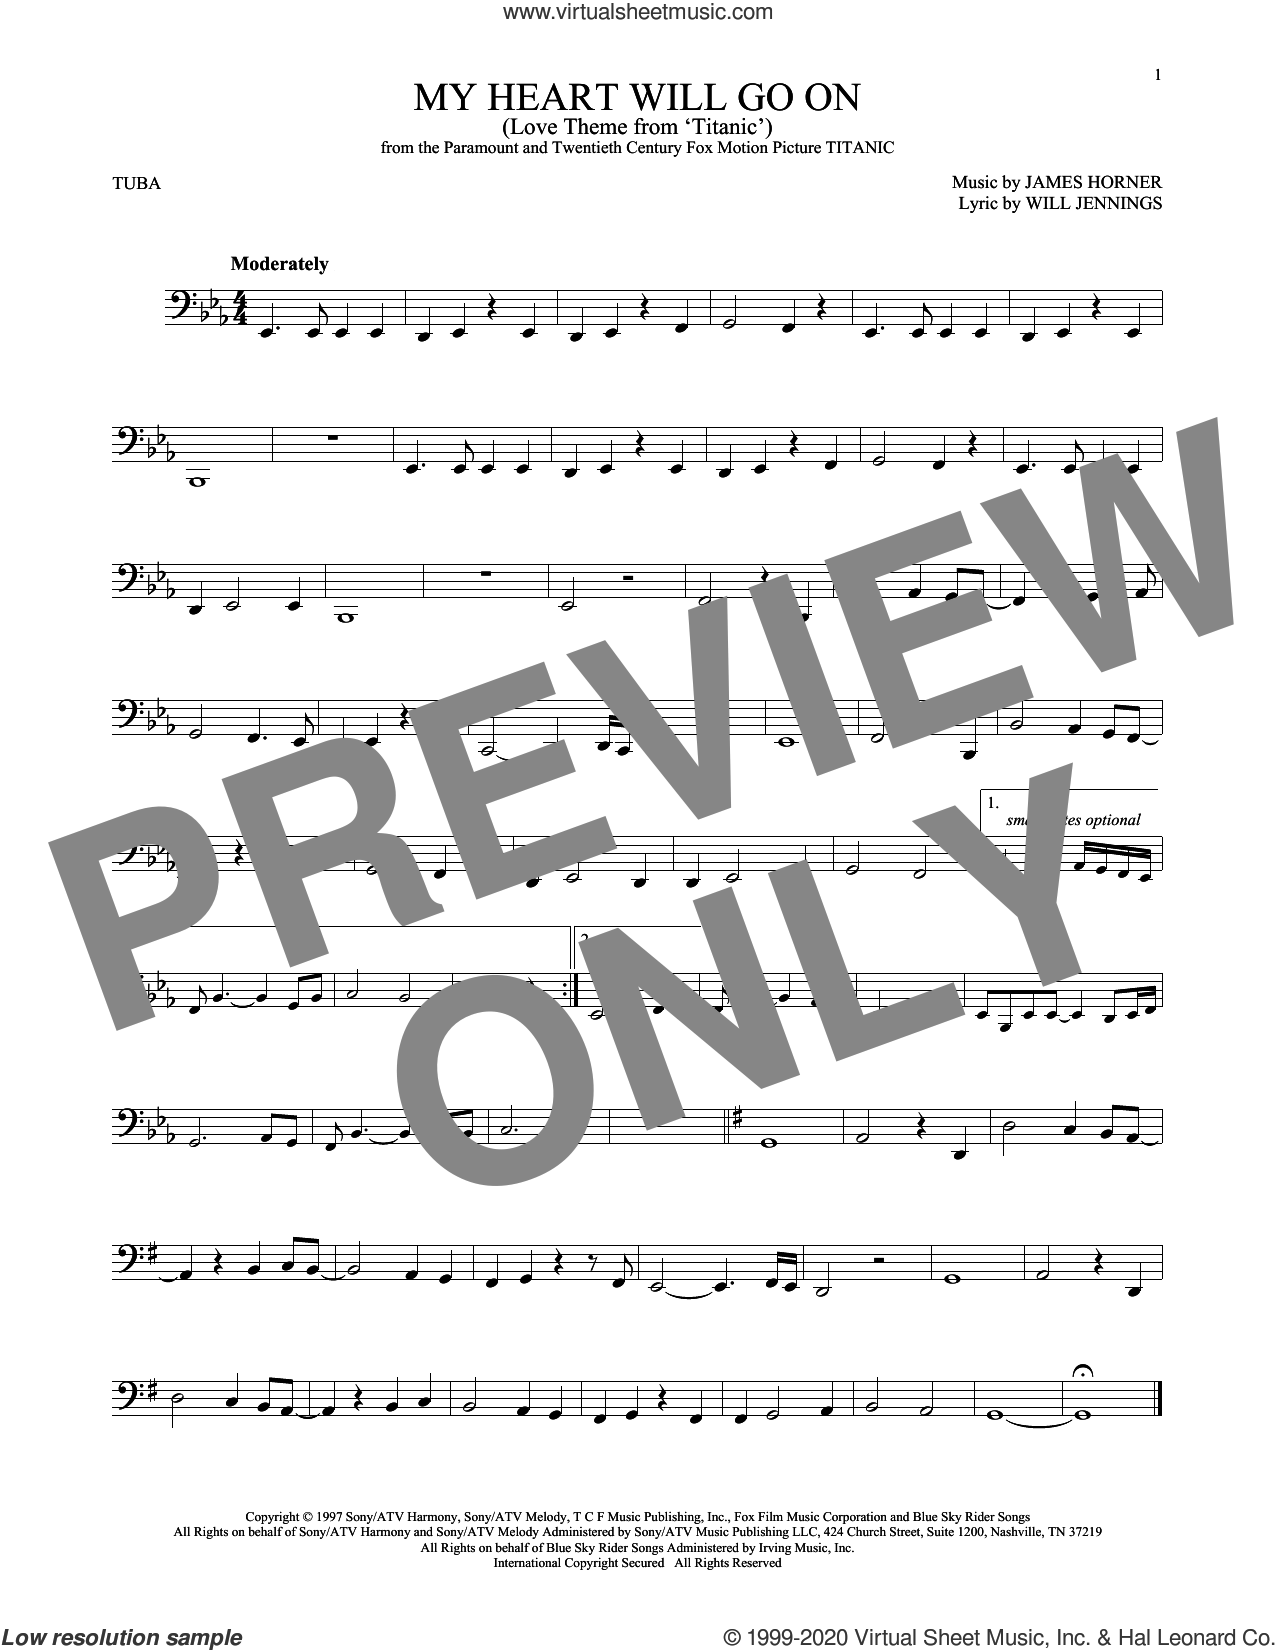 My Heart Will Go On (Love Theme from Titanic) sheet music for Tuba Solo (tuba) by Celine Dion, James Horner and Will Jennings, intermediate skill level